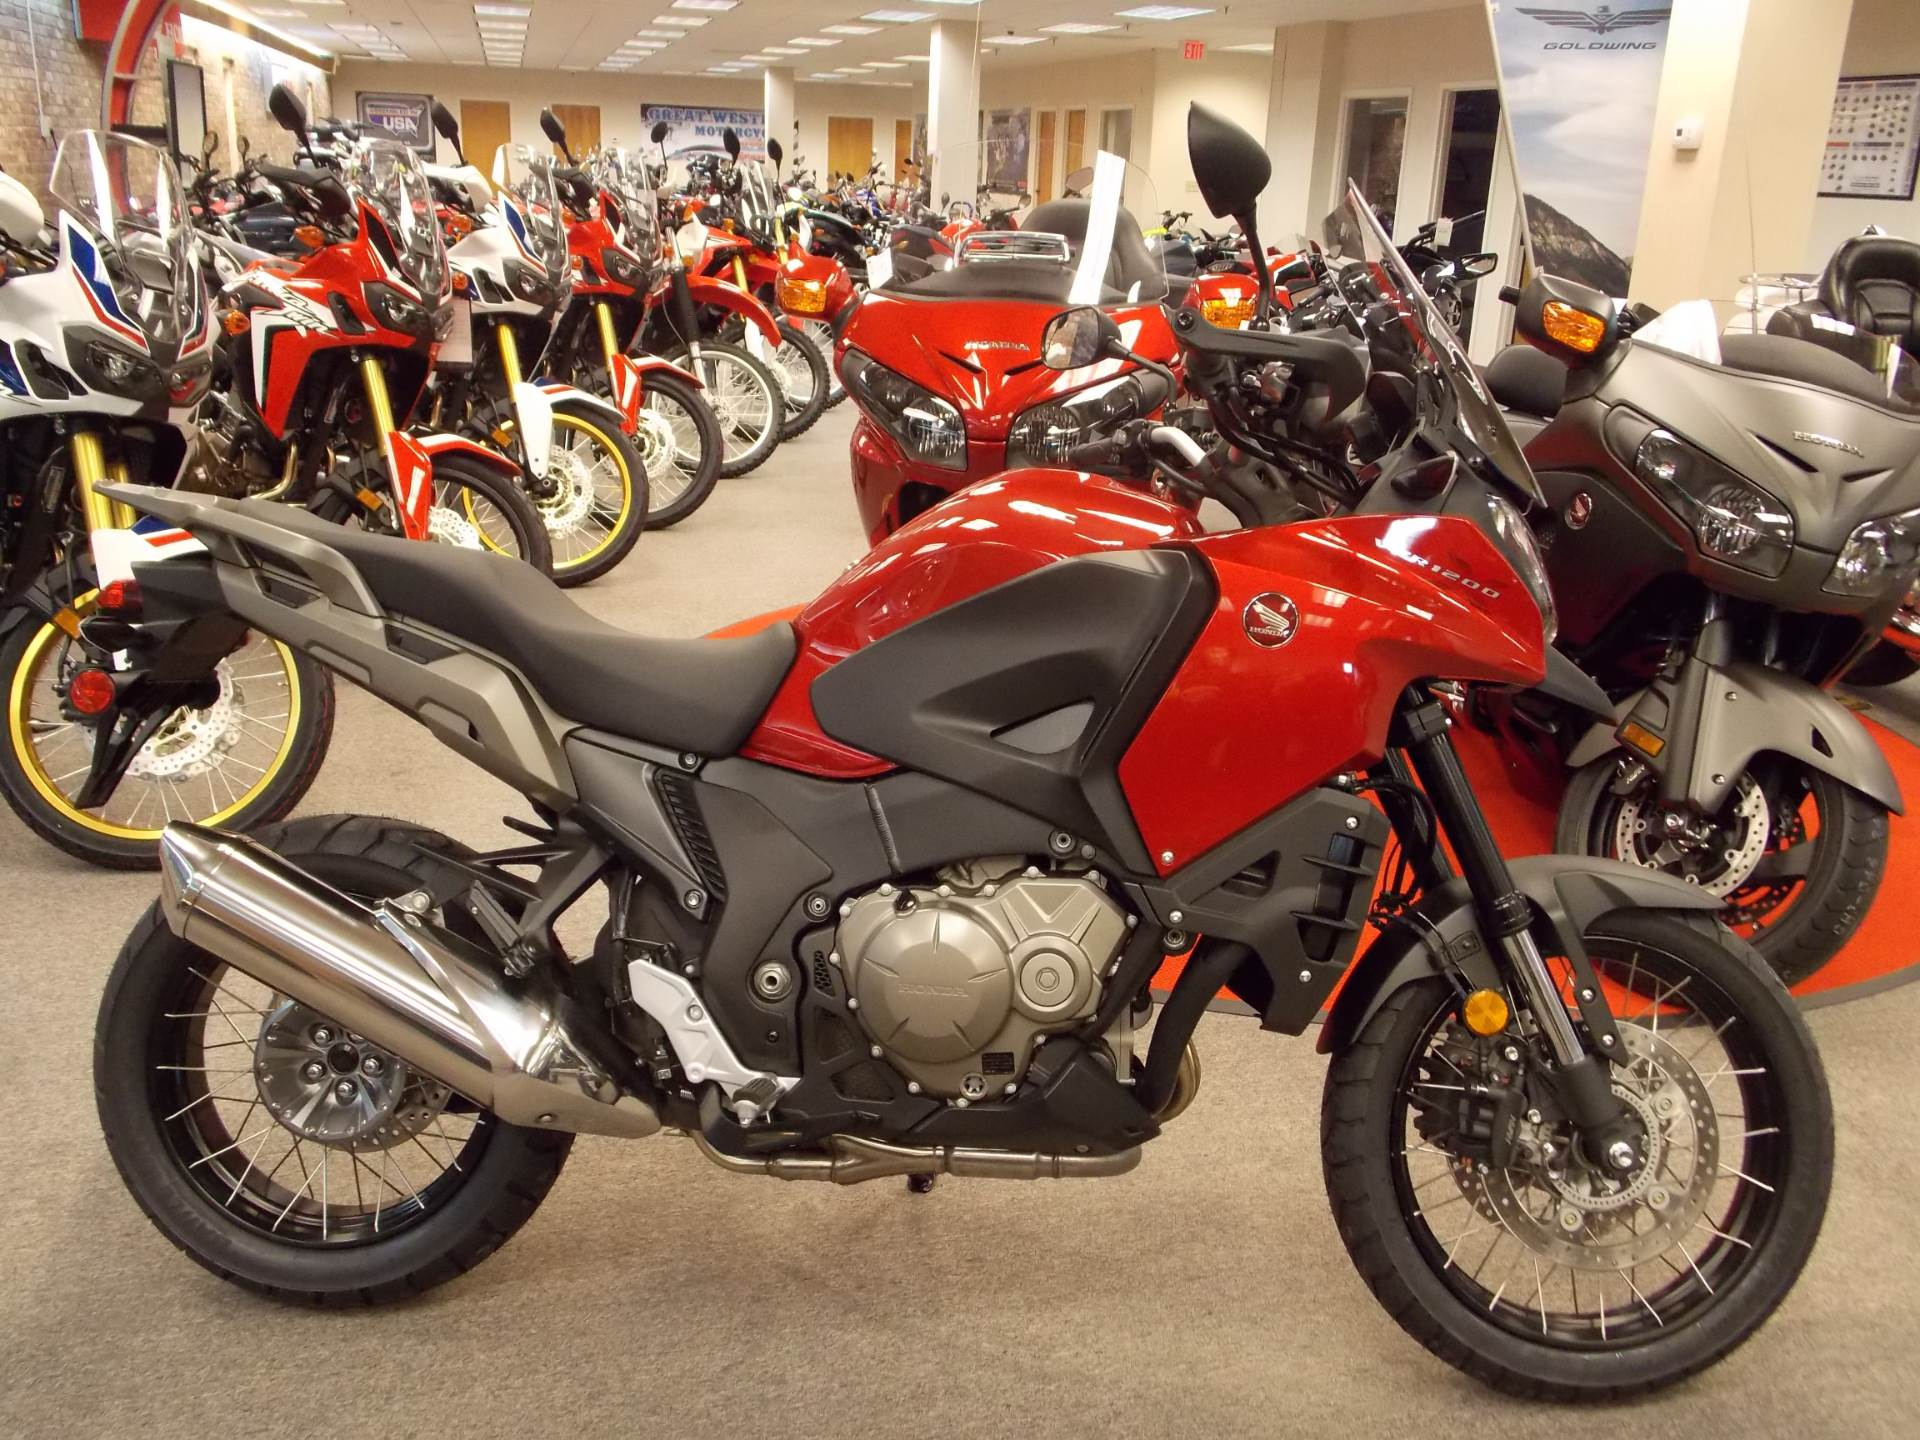 new 2017 honda vfr1200x motorcycles in statesville, nc | stock